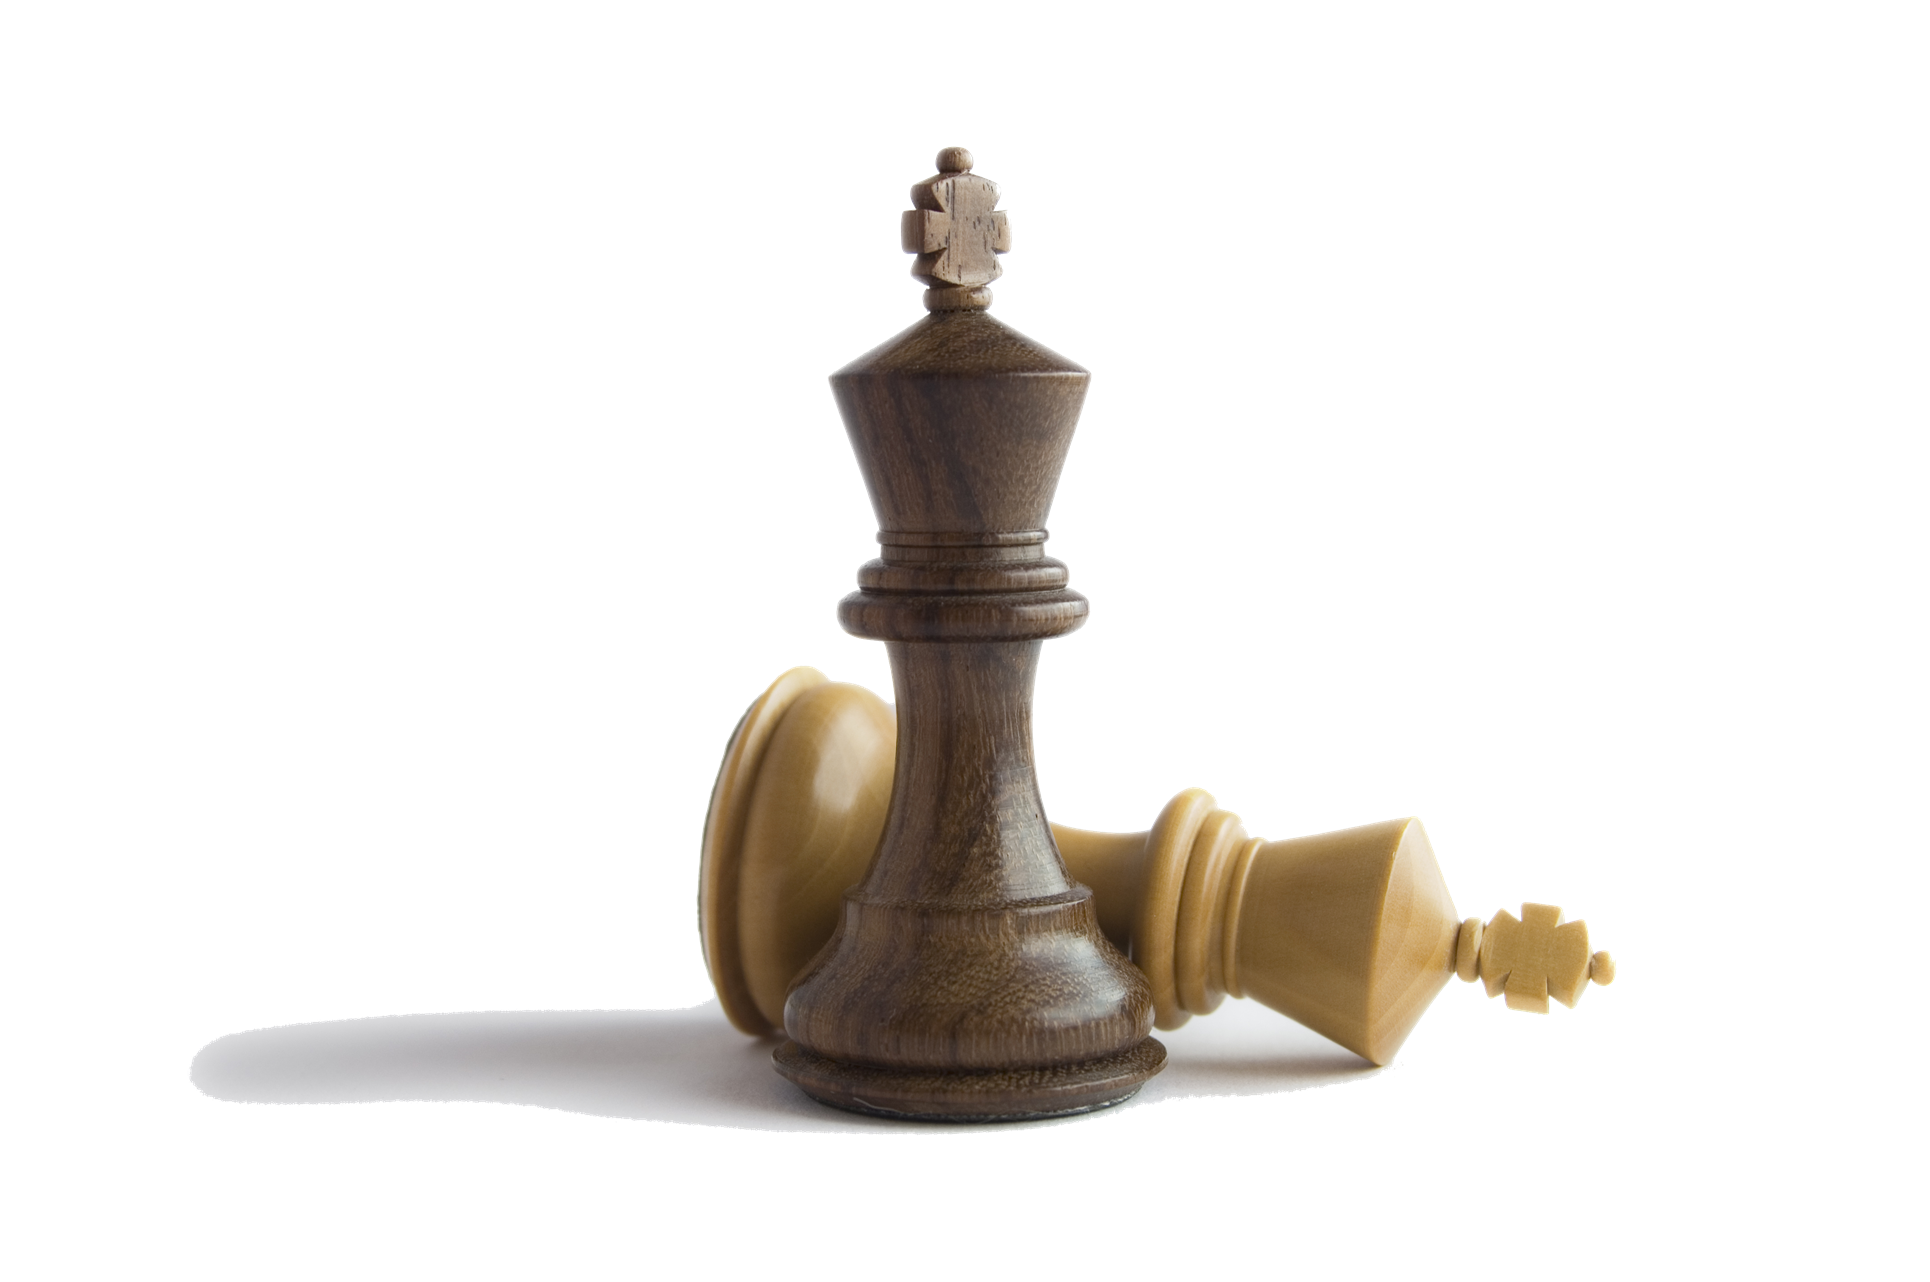 Chess PNG - 3349